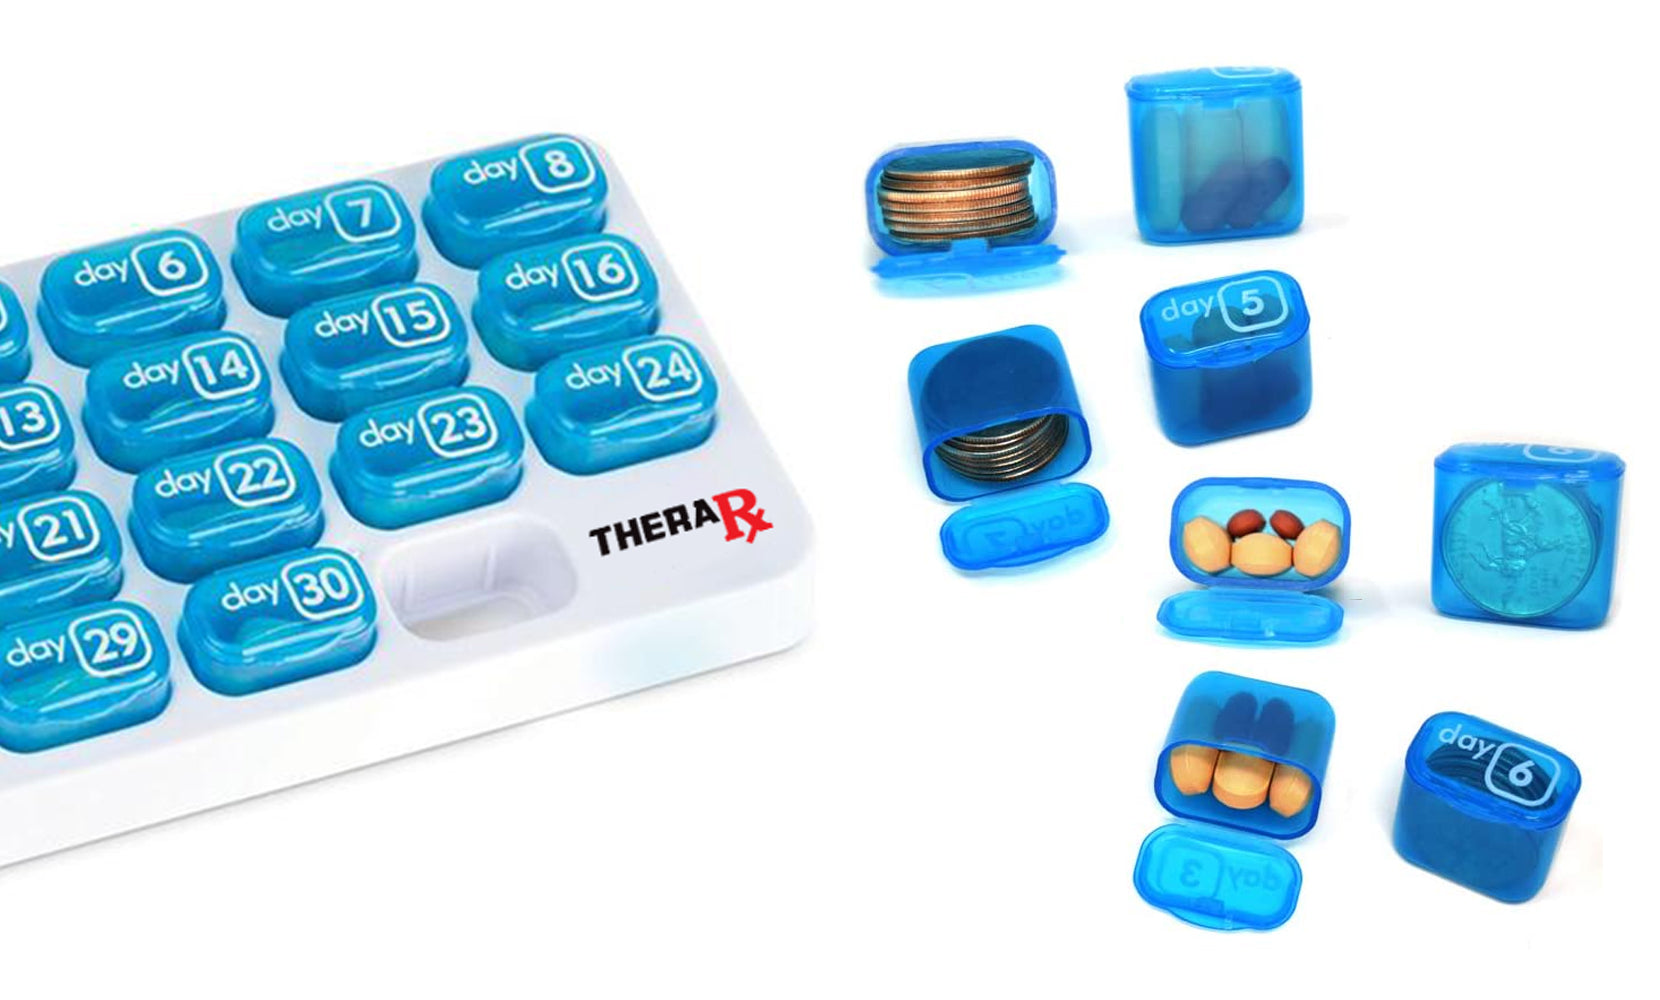 31 Day Monthly Pill and Vitamin Organizer with Large Removable Pods